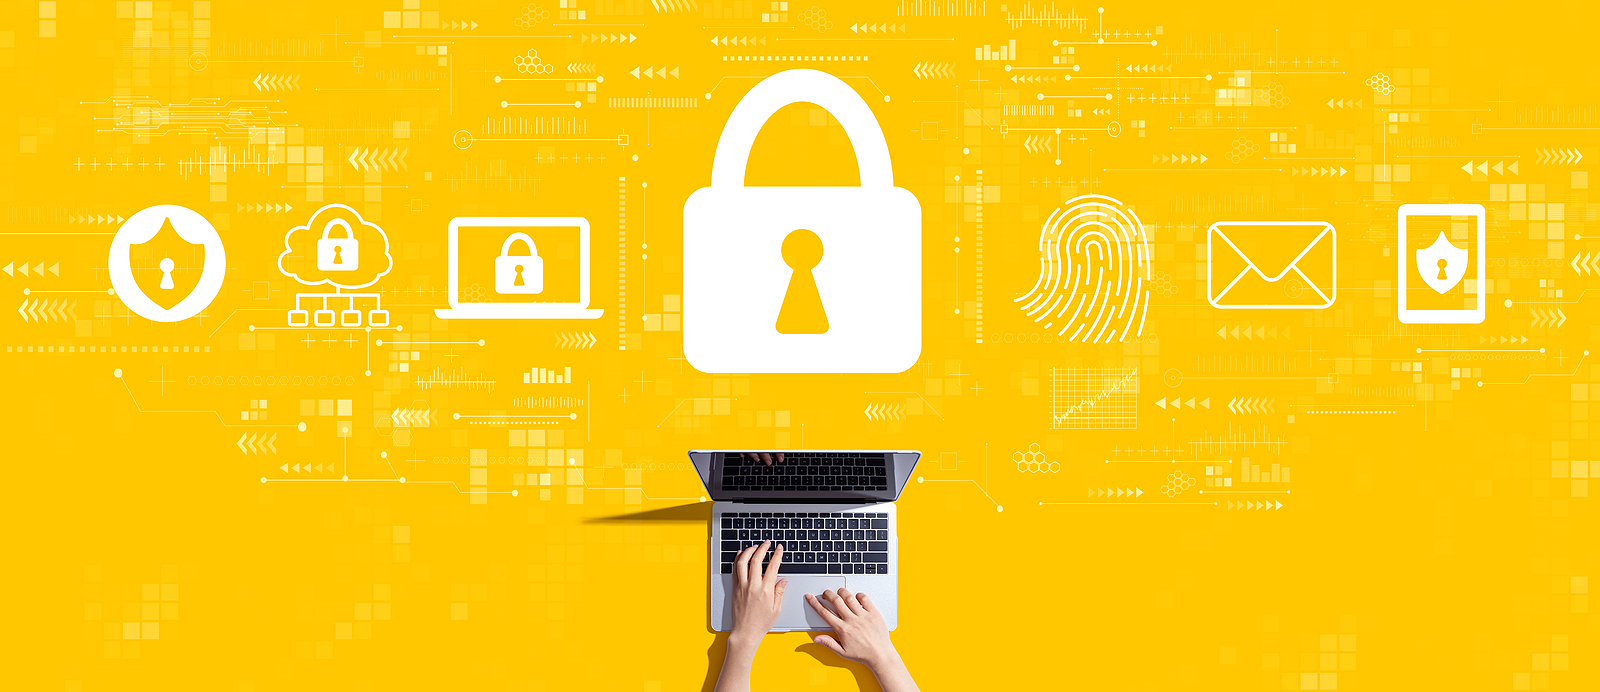 Document security concept with person working with a laptop